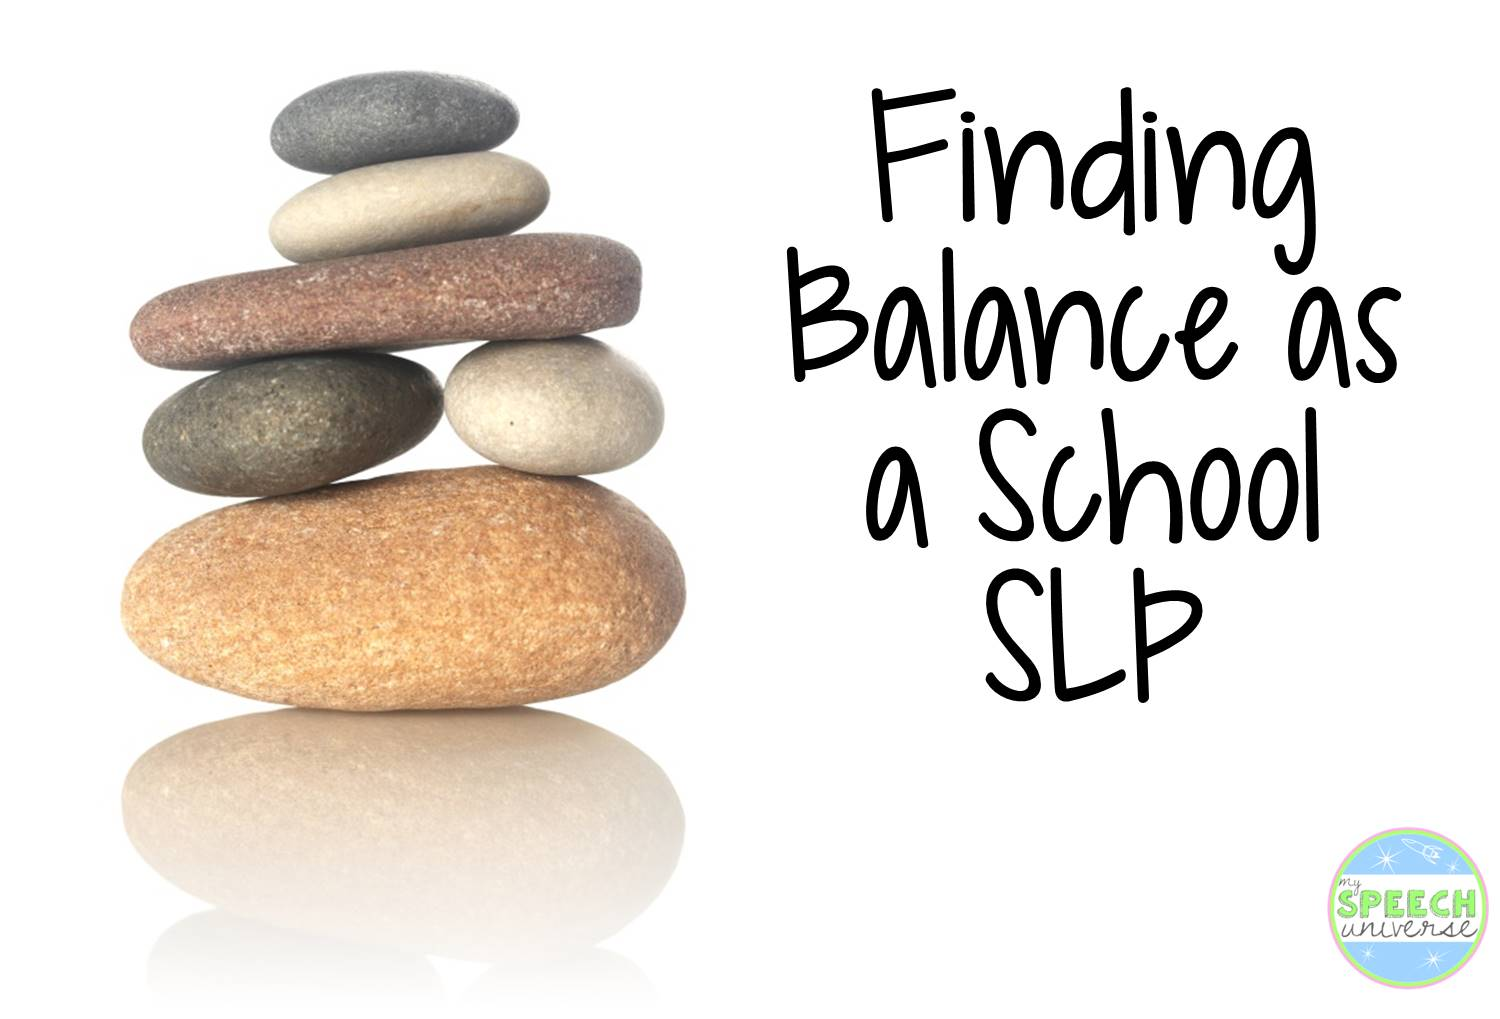 Finding Balance as a School SLP